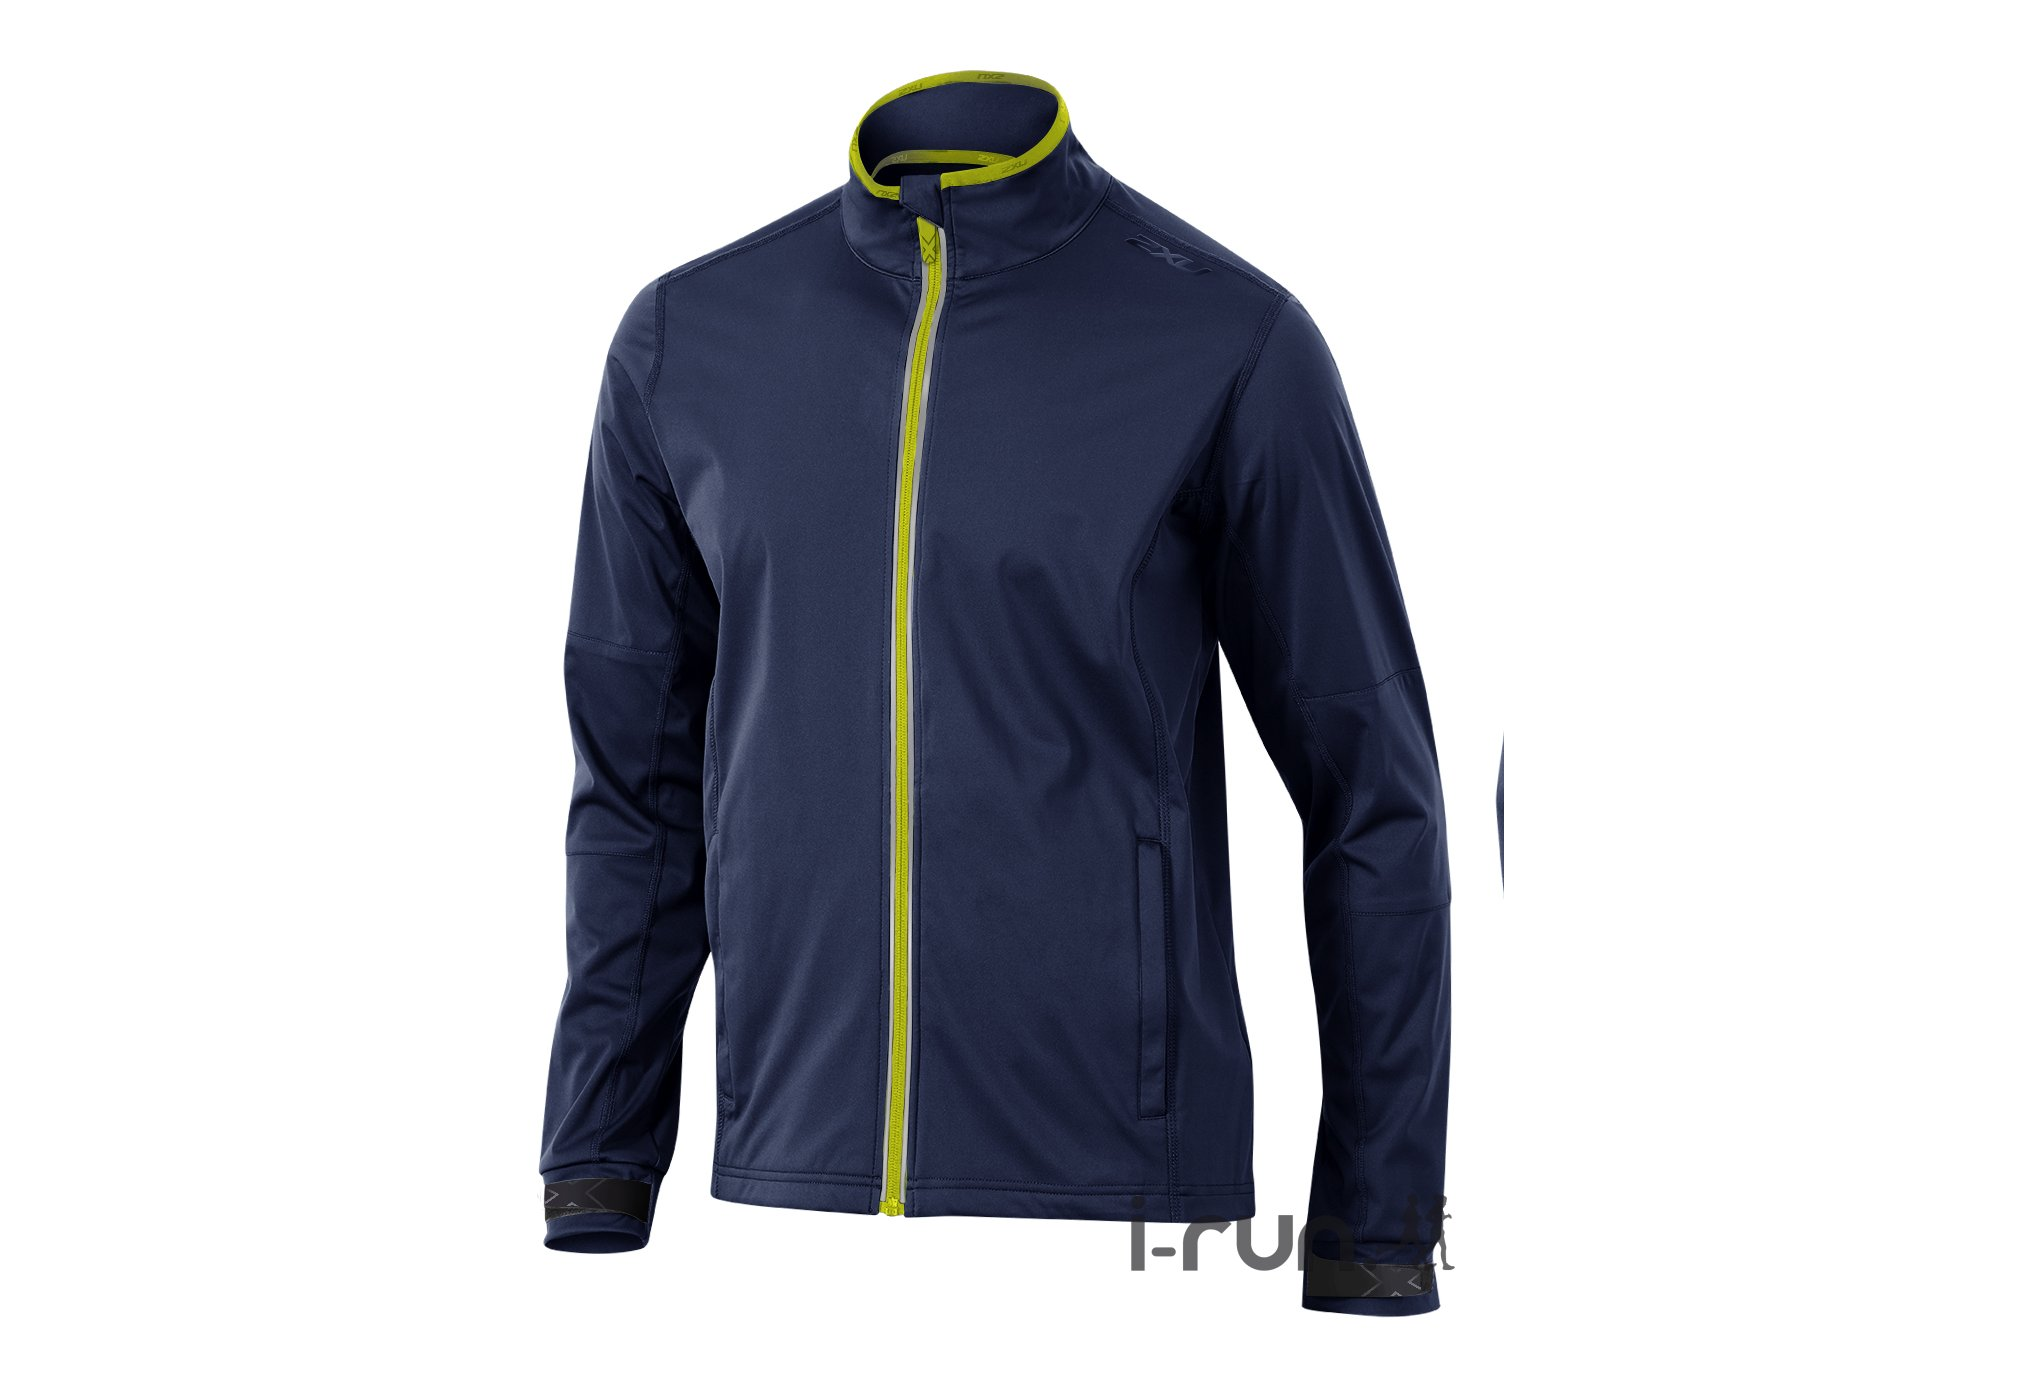 2xu Veste element sport m vêtement running homme